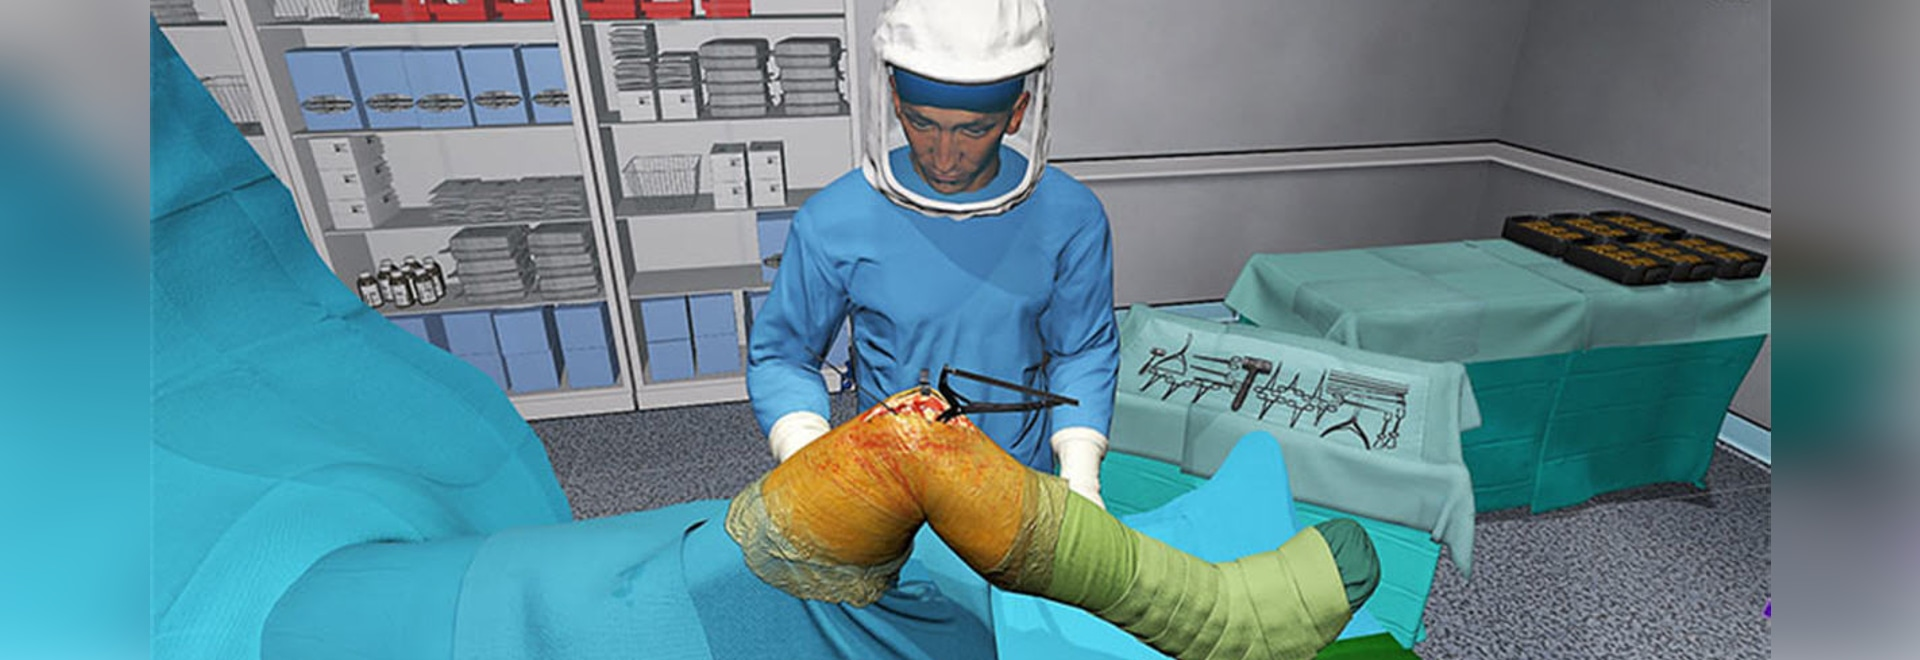 Knee Anesthetic Injection Virtual Reality Trainer Featured At AAHKS